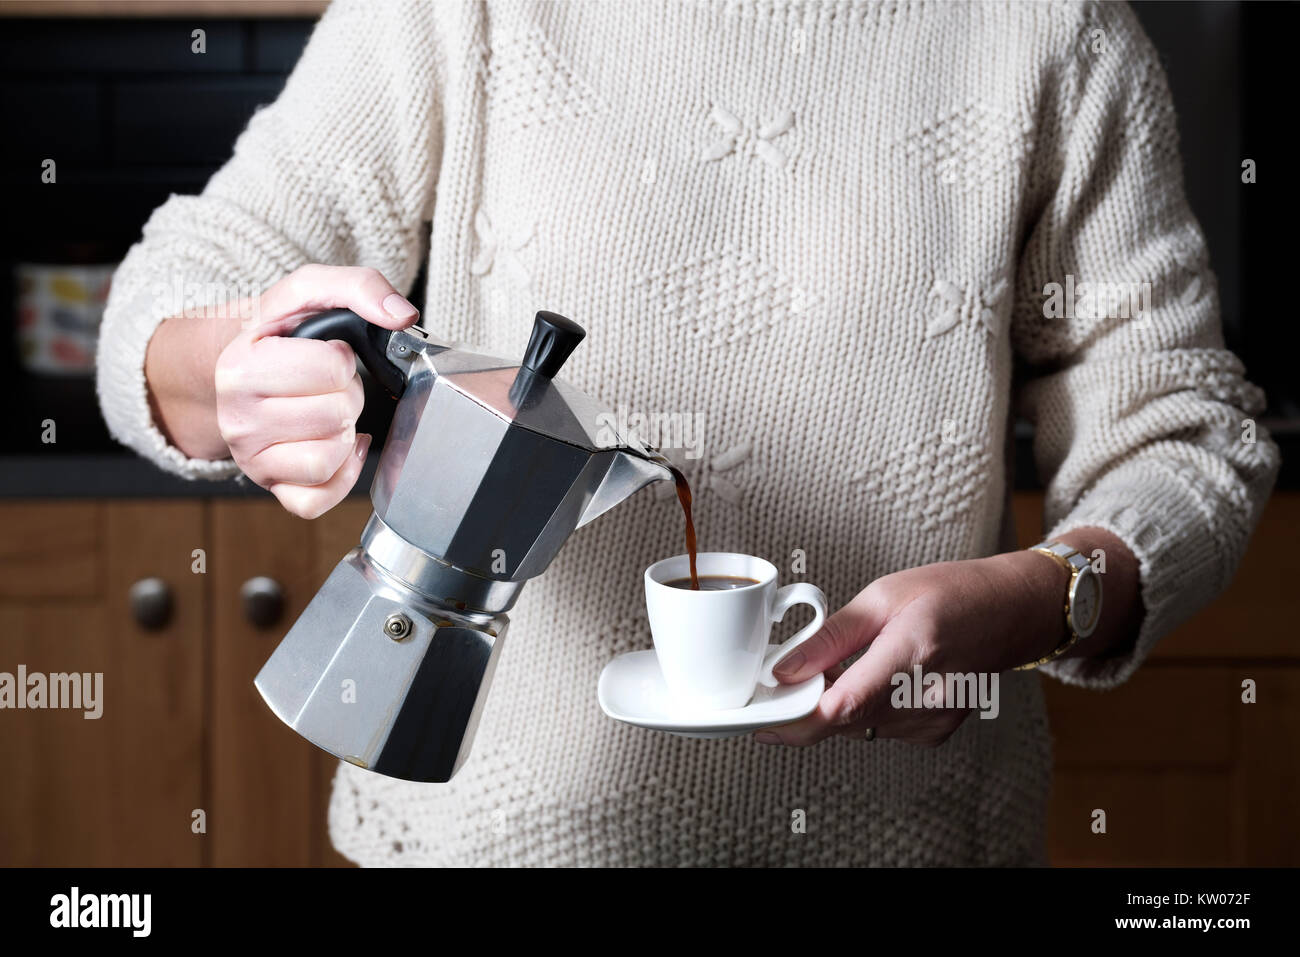 A smart but casually dressed woman pouring an espresso coffee from a moka hob espresso maker whilst standing in - Stock Image